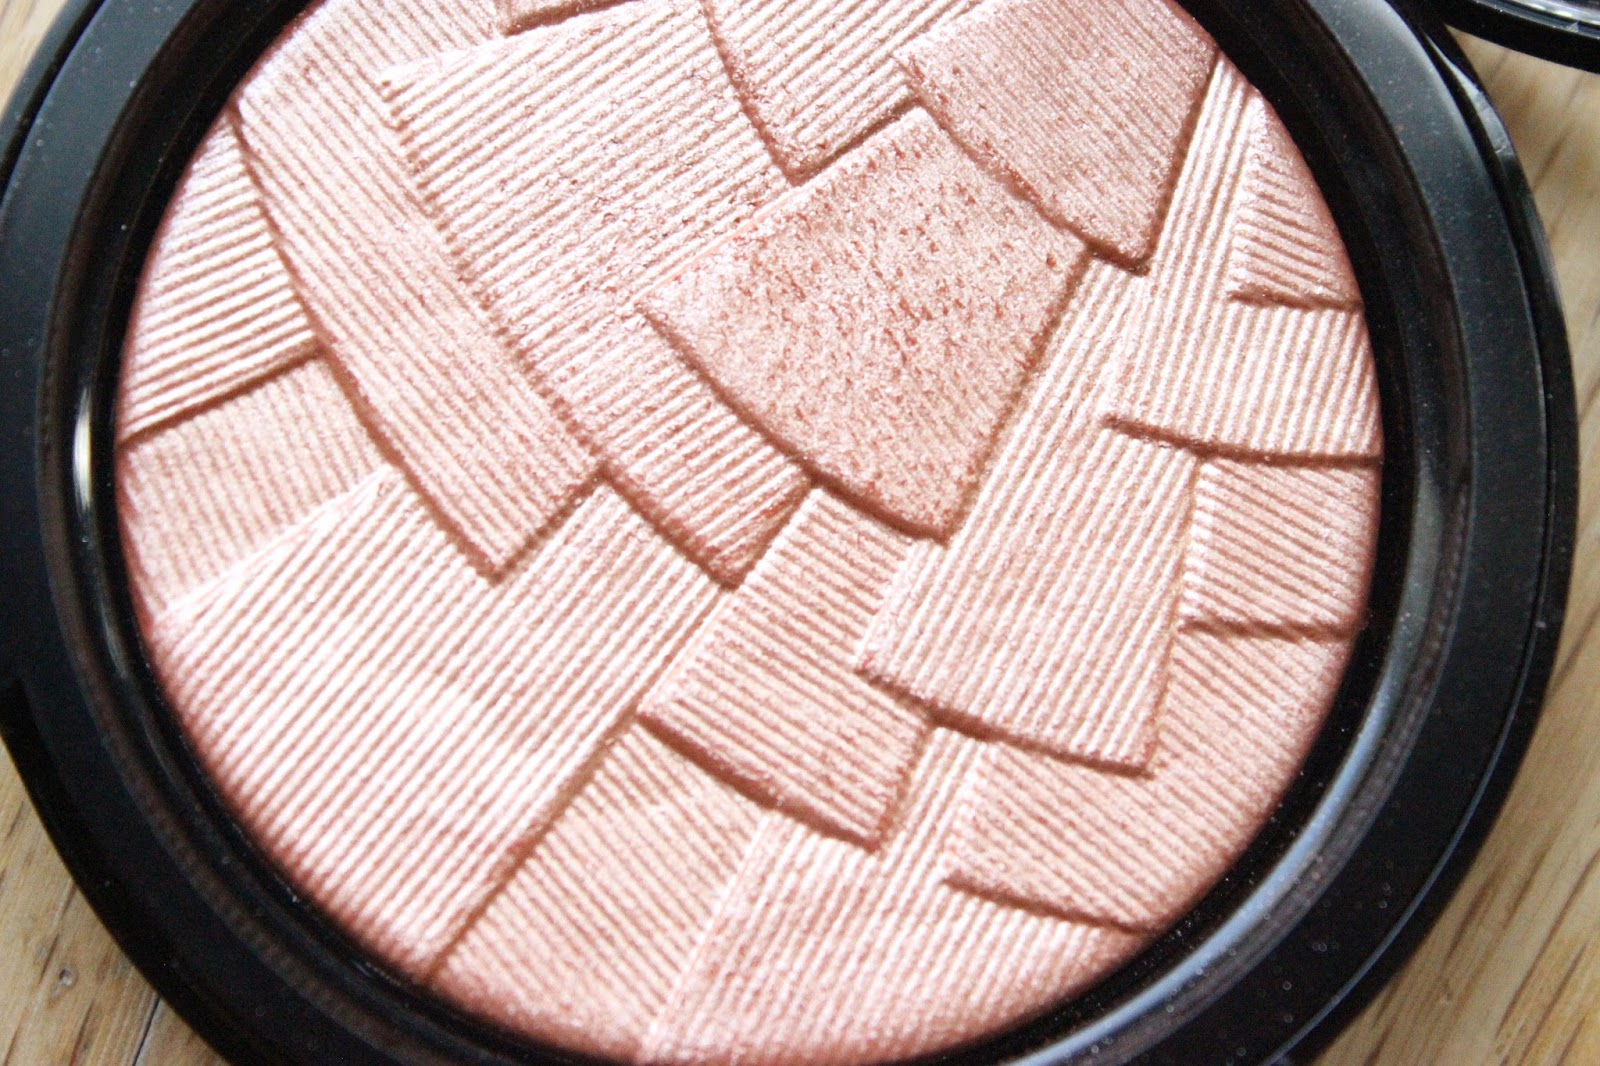 anastasia beverly hills illuminator peach nectar nc50 black skin dark skin beauty blogger review woc uk abh nataliekayo discoveriesofself